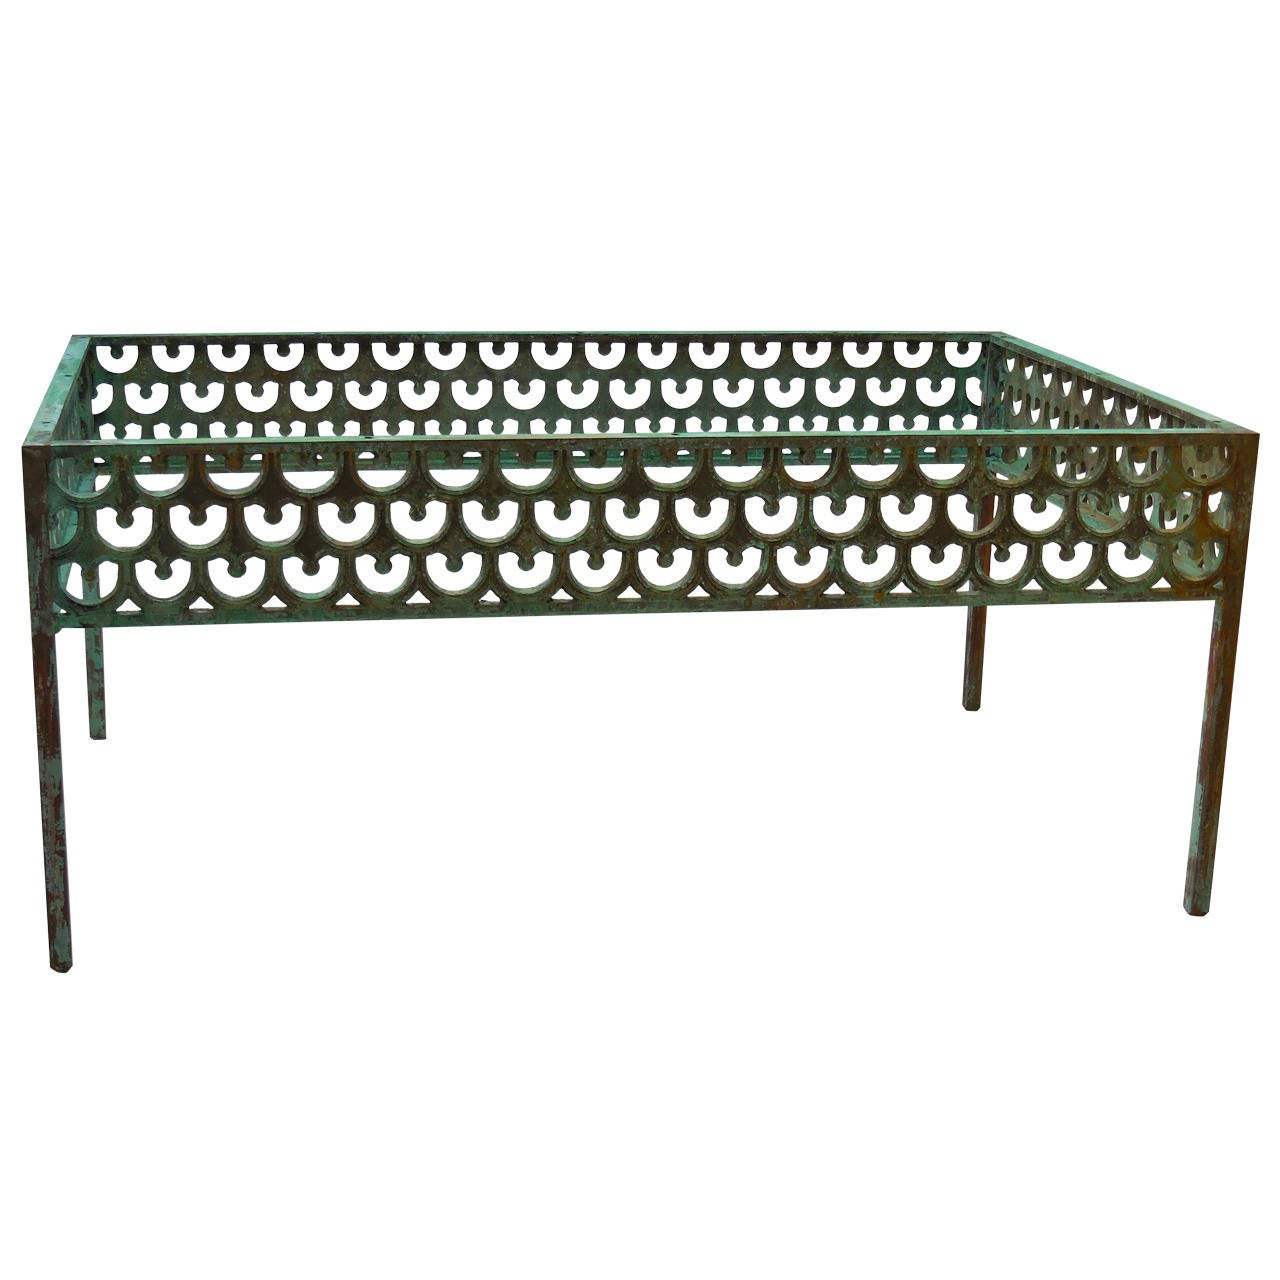 Architectural bronze coffee table at 1stdibs for Architectural coffee table